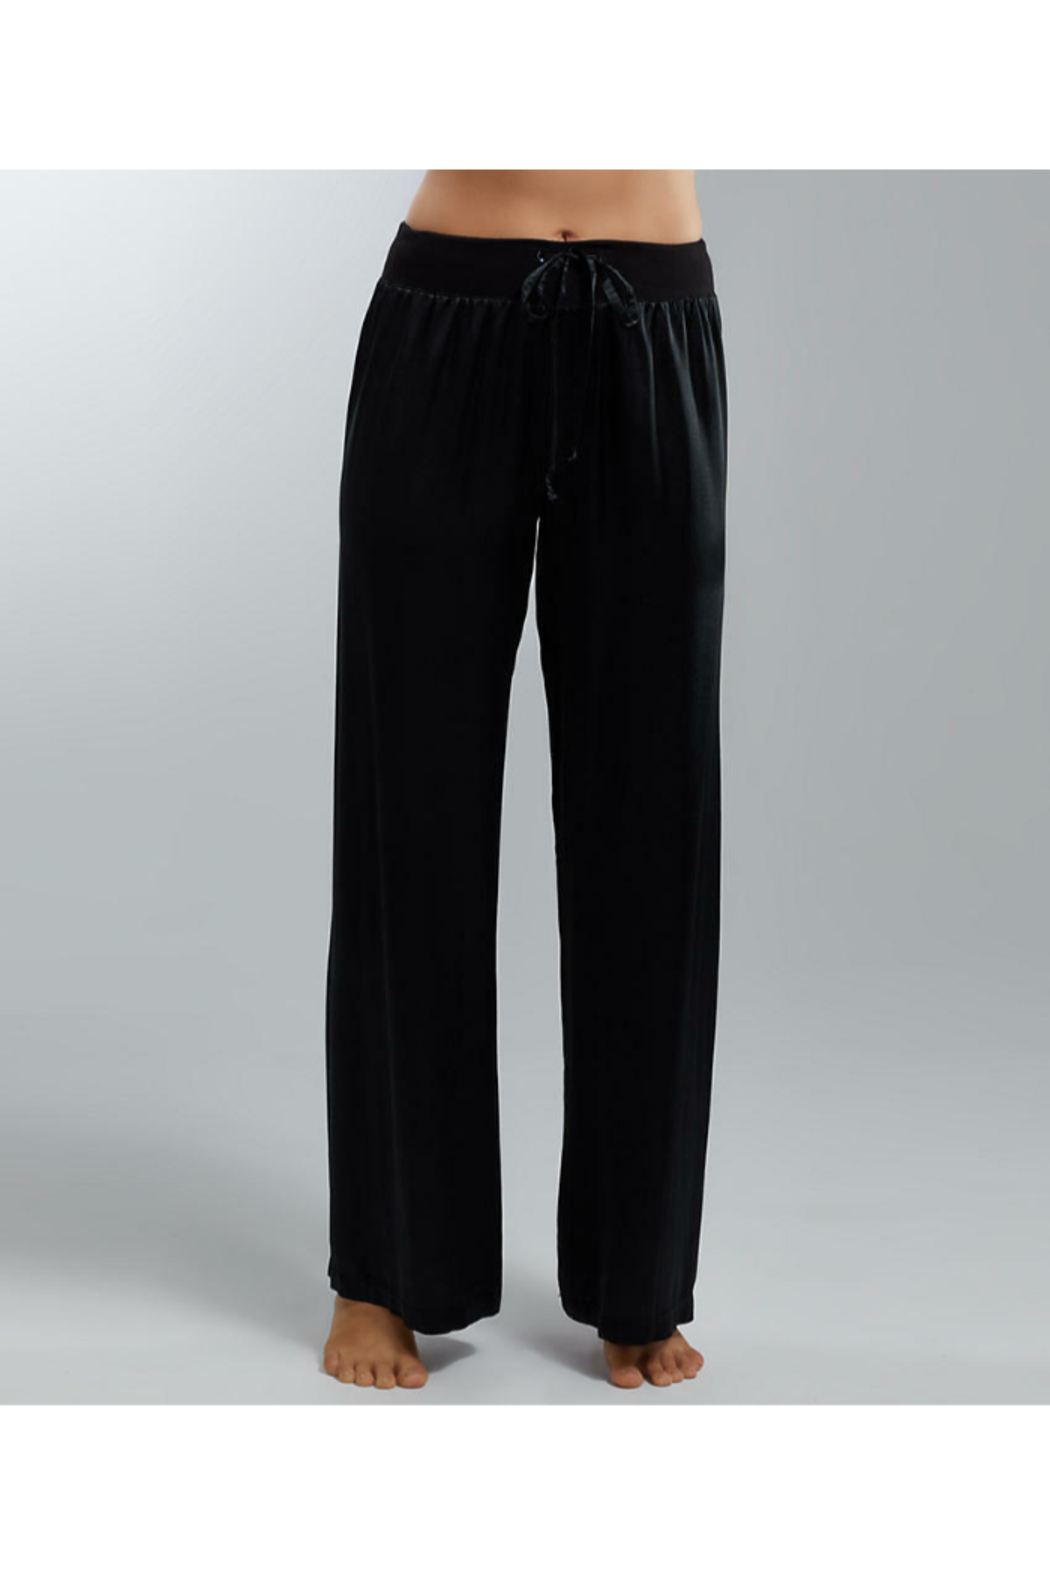 The Birds Nest JOLIE PANT - Front Cropped Image